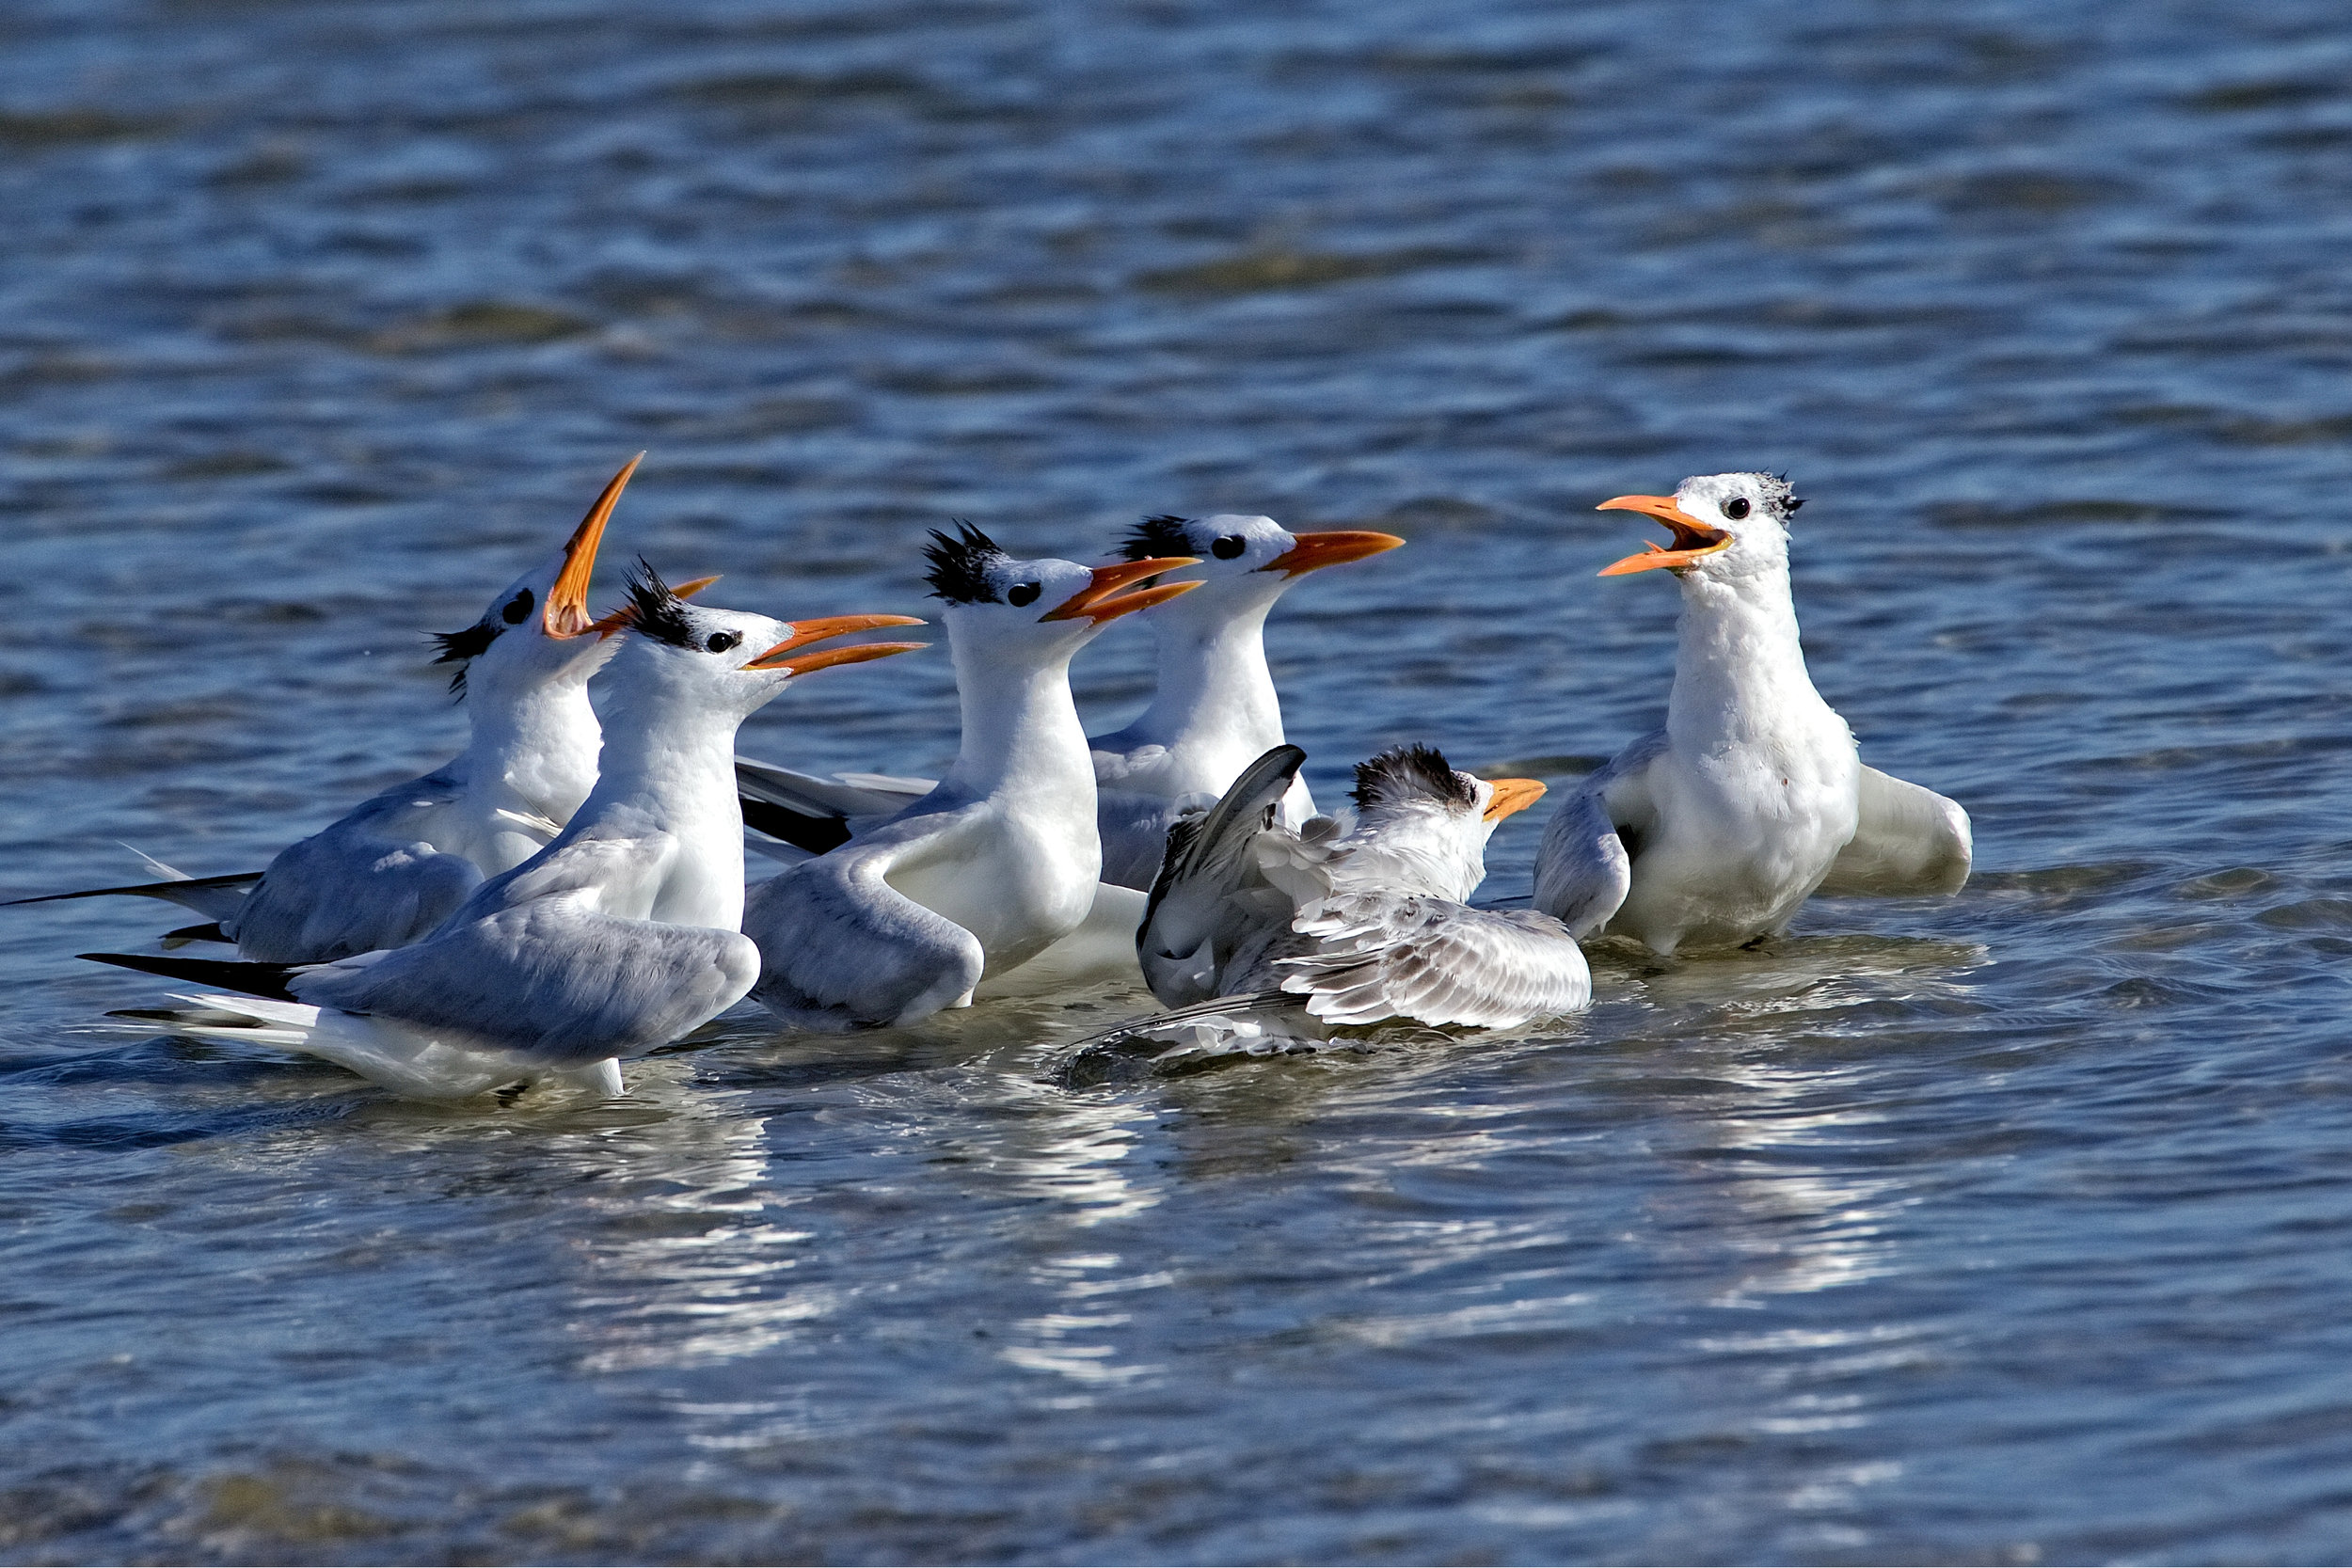 """""""Thank you for coming to Jr's Baptism"""" ...Royal Tern Chick gets """"baptized"""" in the Atlantic Ocean Surf.."""